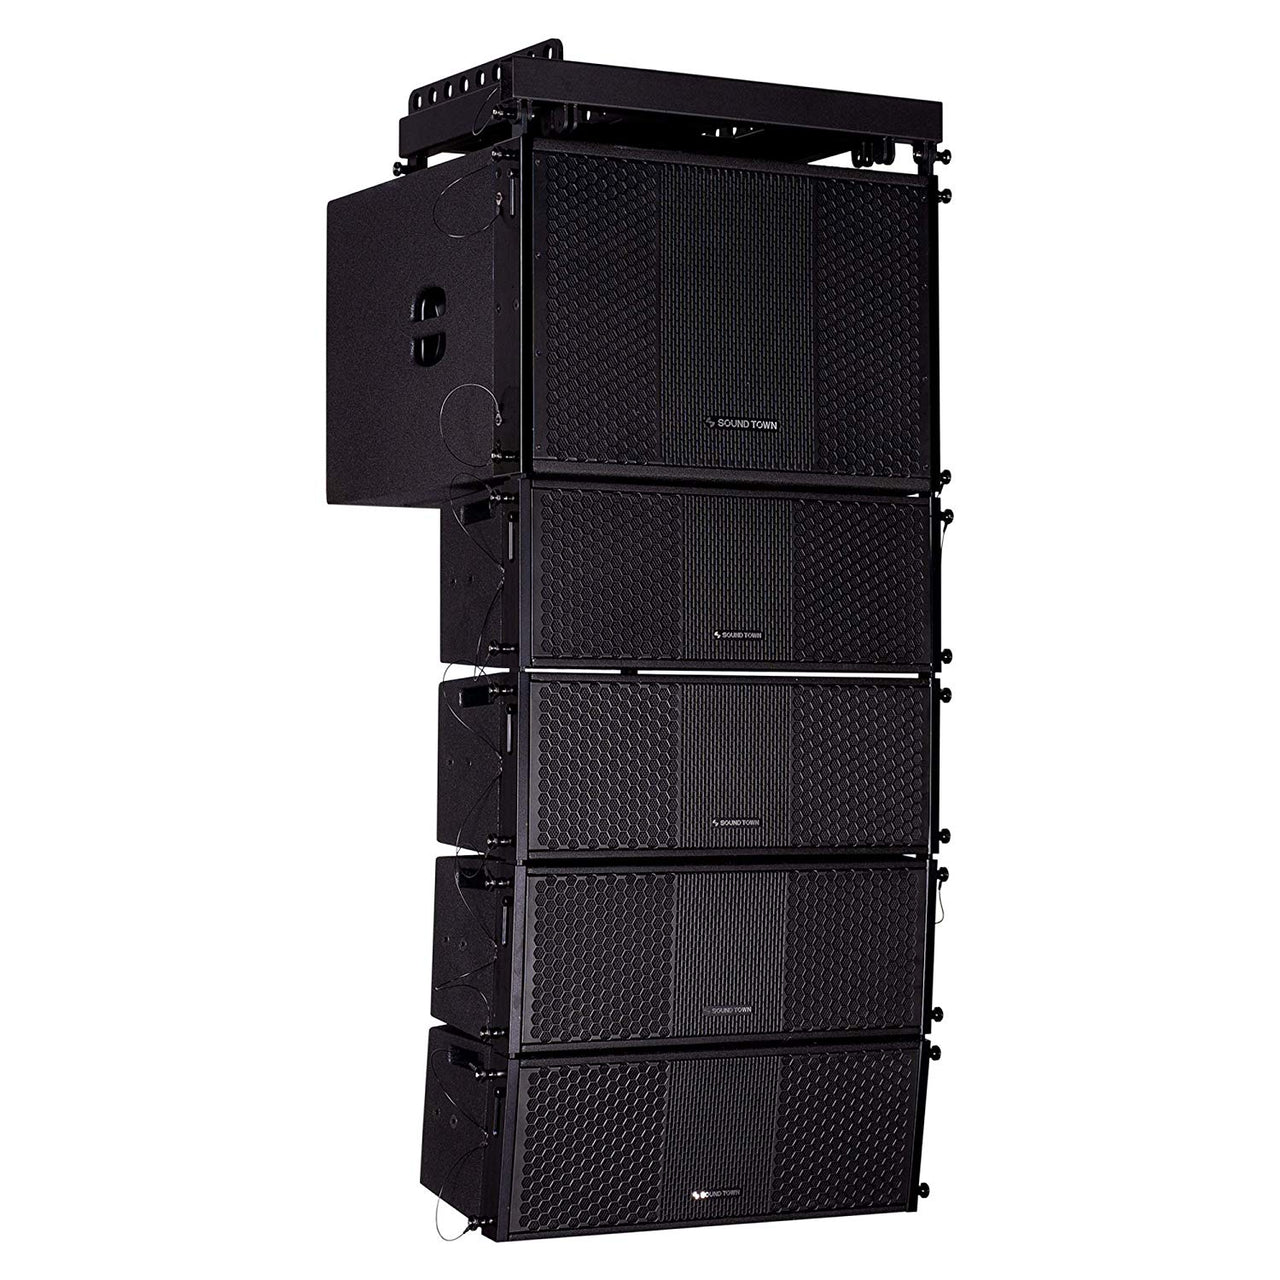 "ZETHUS Series Line Array Speaker System w/ (1) 15"" Subwoofer, (4) Compact 2 x 8"" Speakers, Black (ZETHUS-115S208X4)"